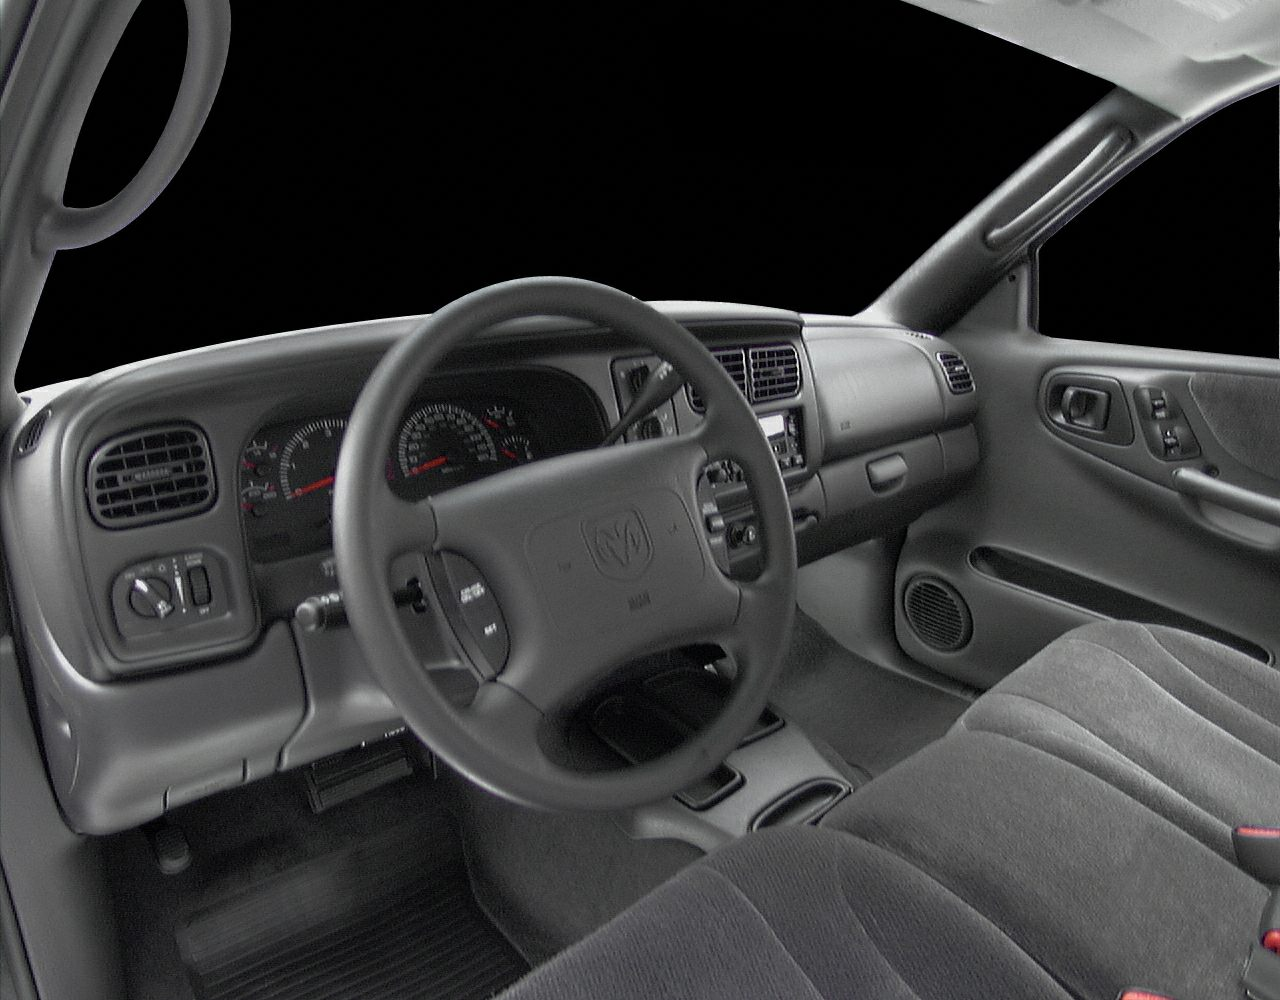 Usb Ddt B on 1999 Dodge Dakota Interior